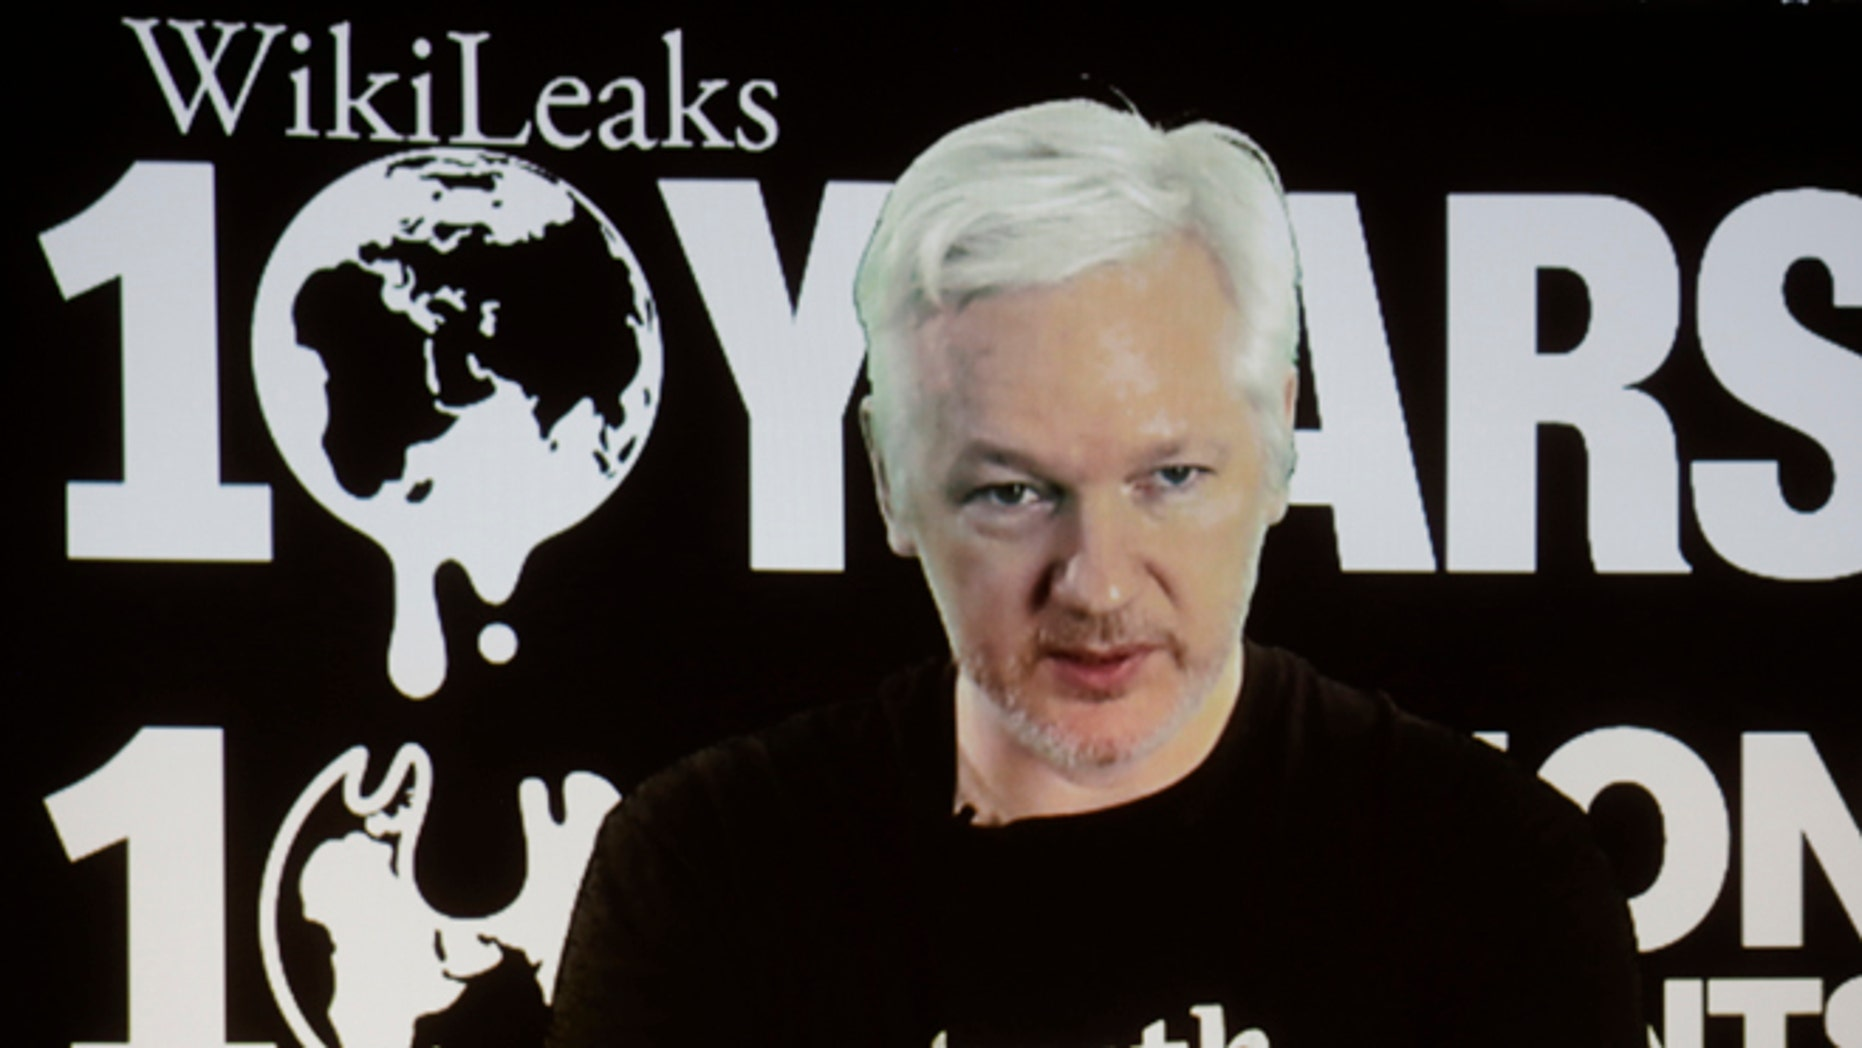 WikiLeaks founder Julian Assange via video link on Oct. 4, 2016.